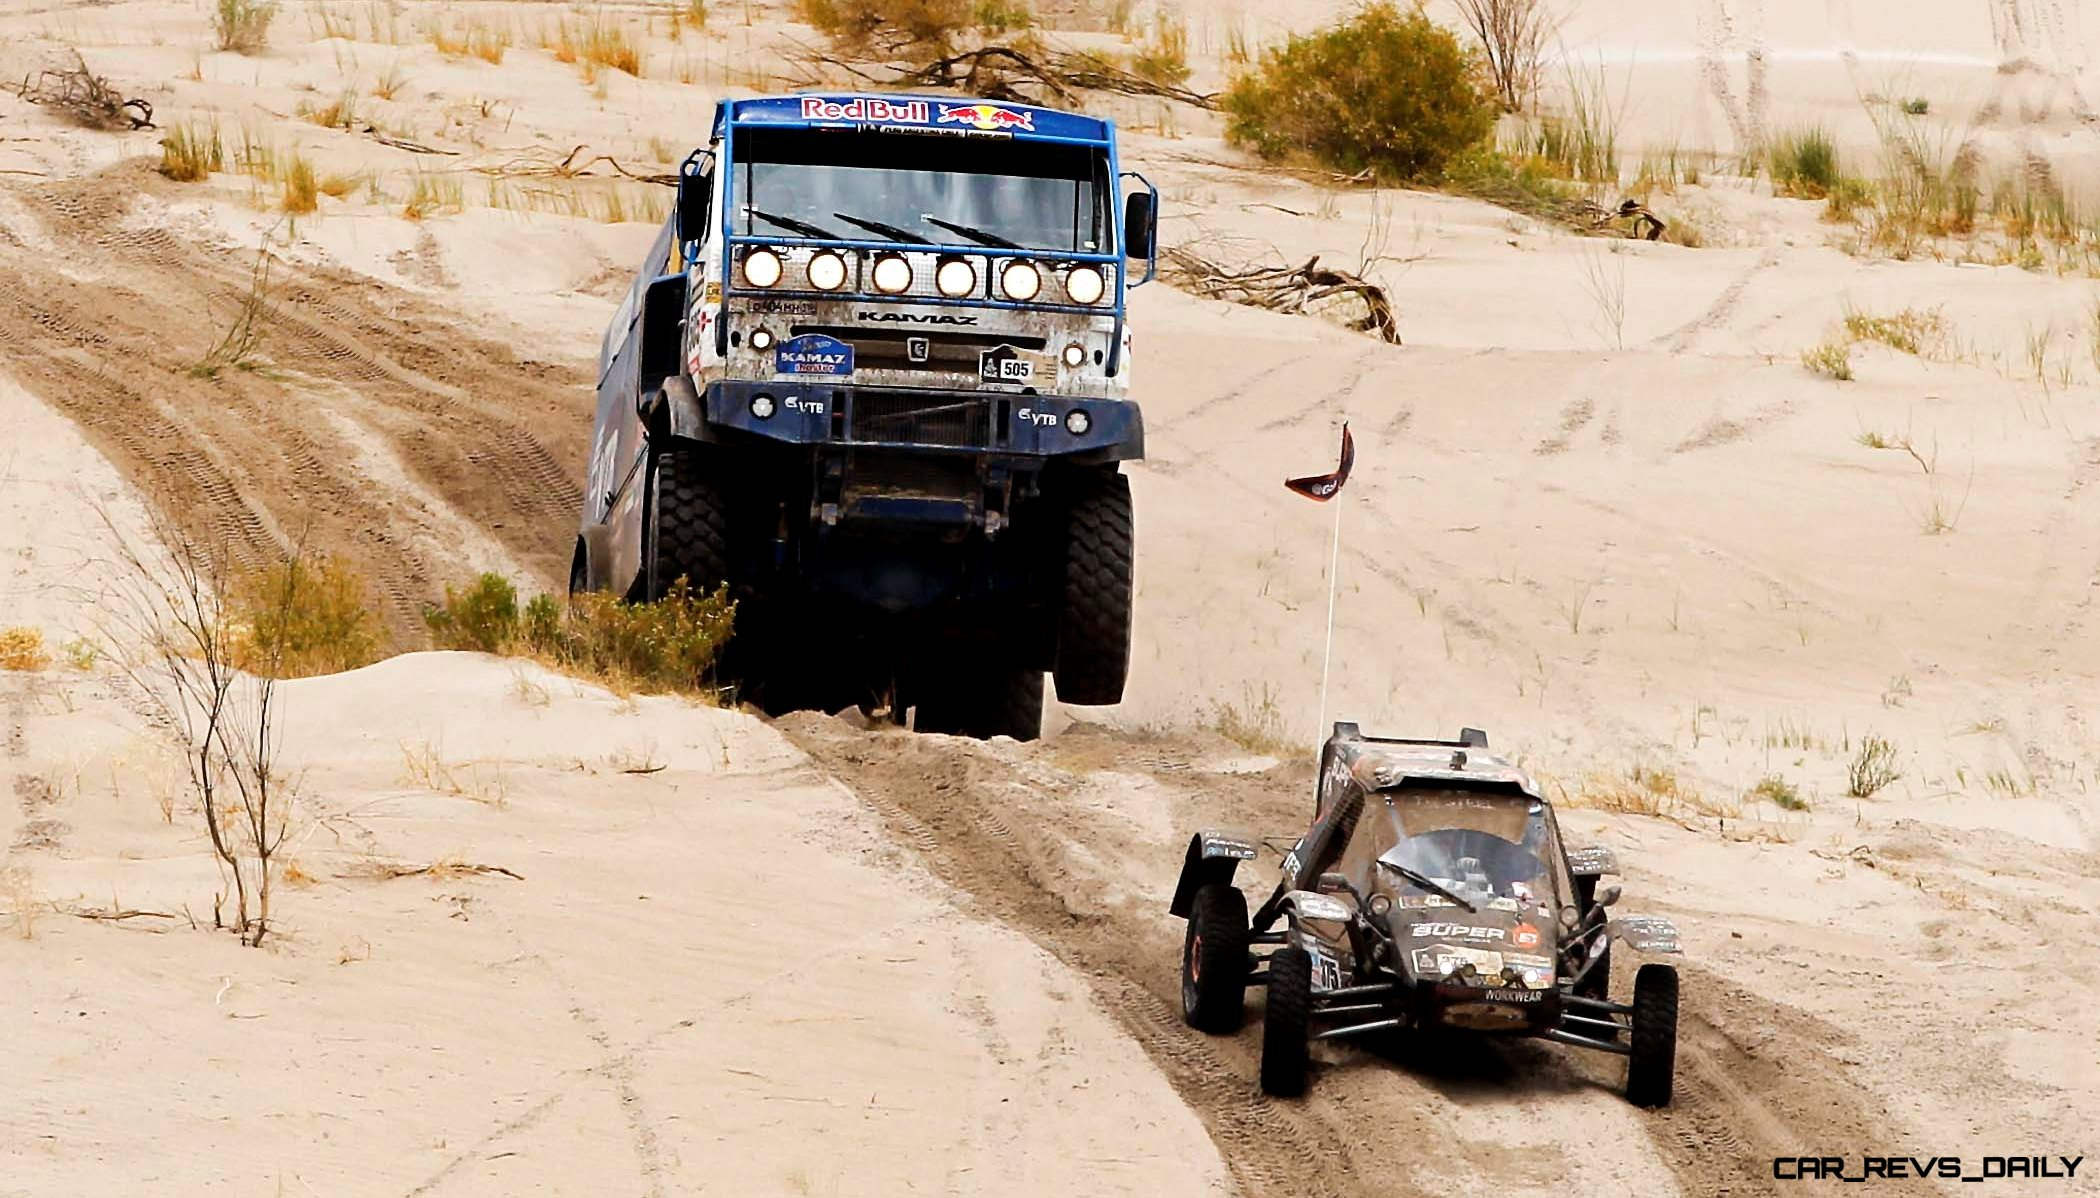 Ayrat Mardeev, Aydar Belyaev and Anton Mirniy, all of Russia, race their Kamaz truck behind the buggy of Jurgen Van Den Goorbergh of The Netherlands during the 11th stage of the 2013 Dakar Rally from La Rioja to Fiambala, Argentina, Wednesday, Jan